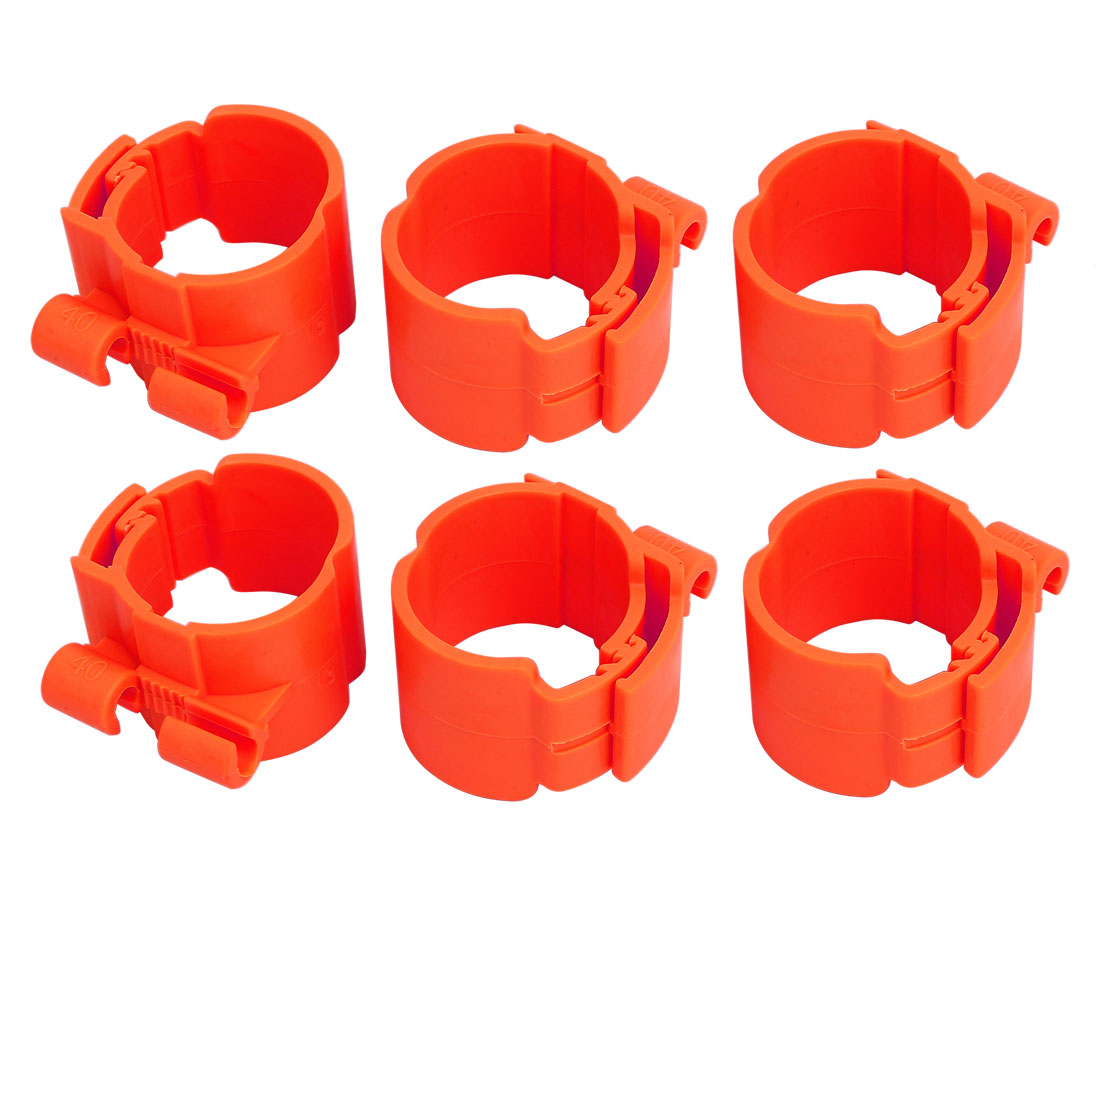 40mm Dia 35mm Width Central Air Conditioner Pipe Clip Clamp Red 6pcs